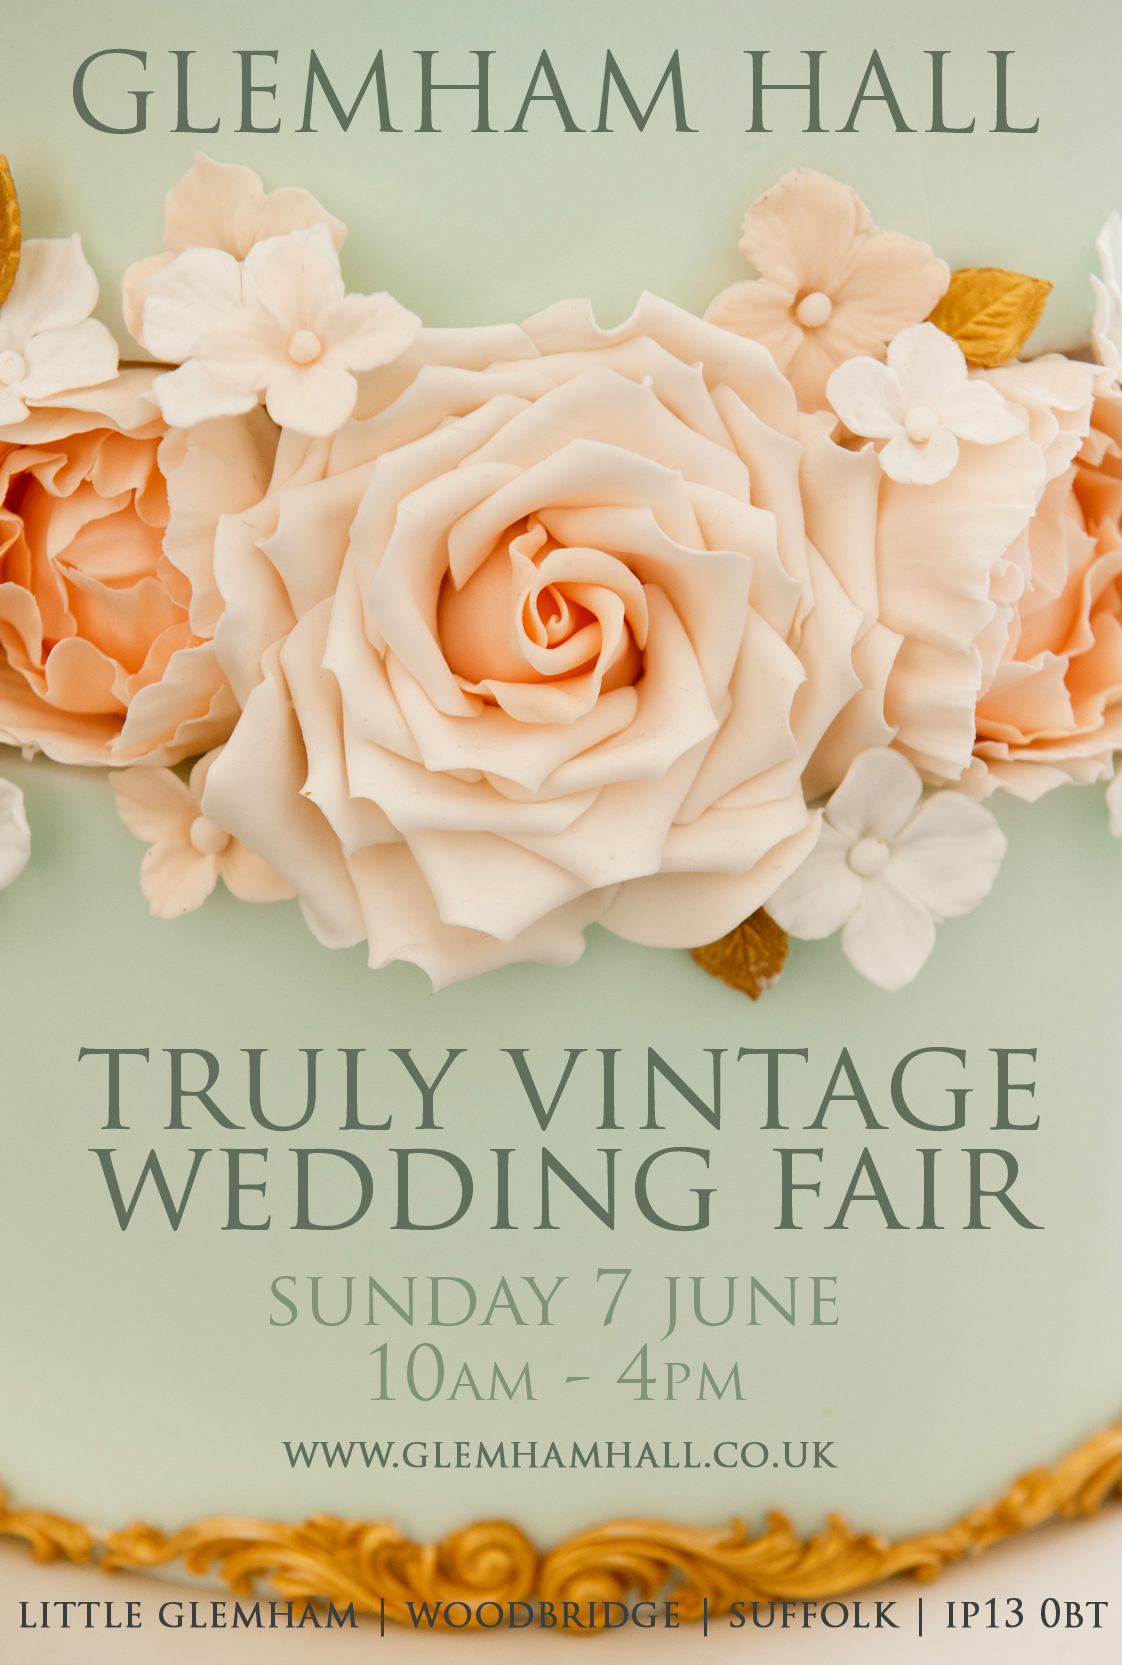 truly-vintage-wedding-fair-glemham-hall-poster-artwork